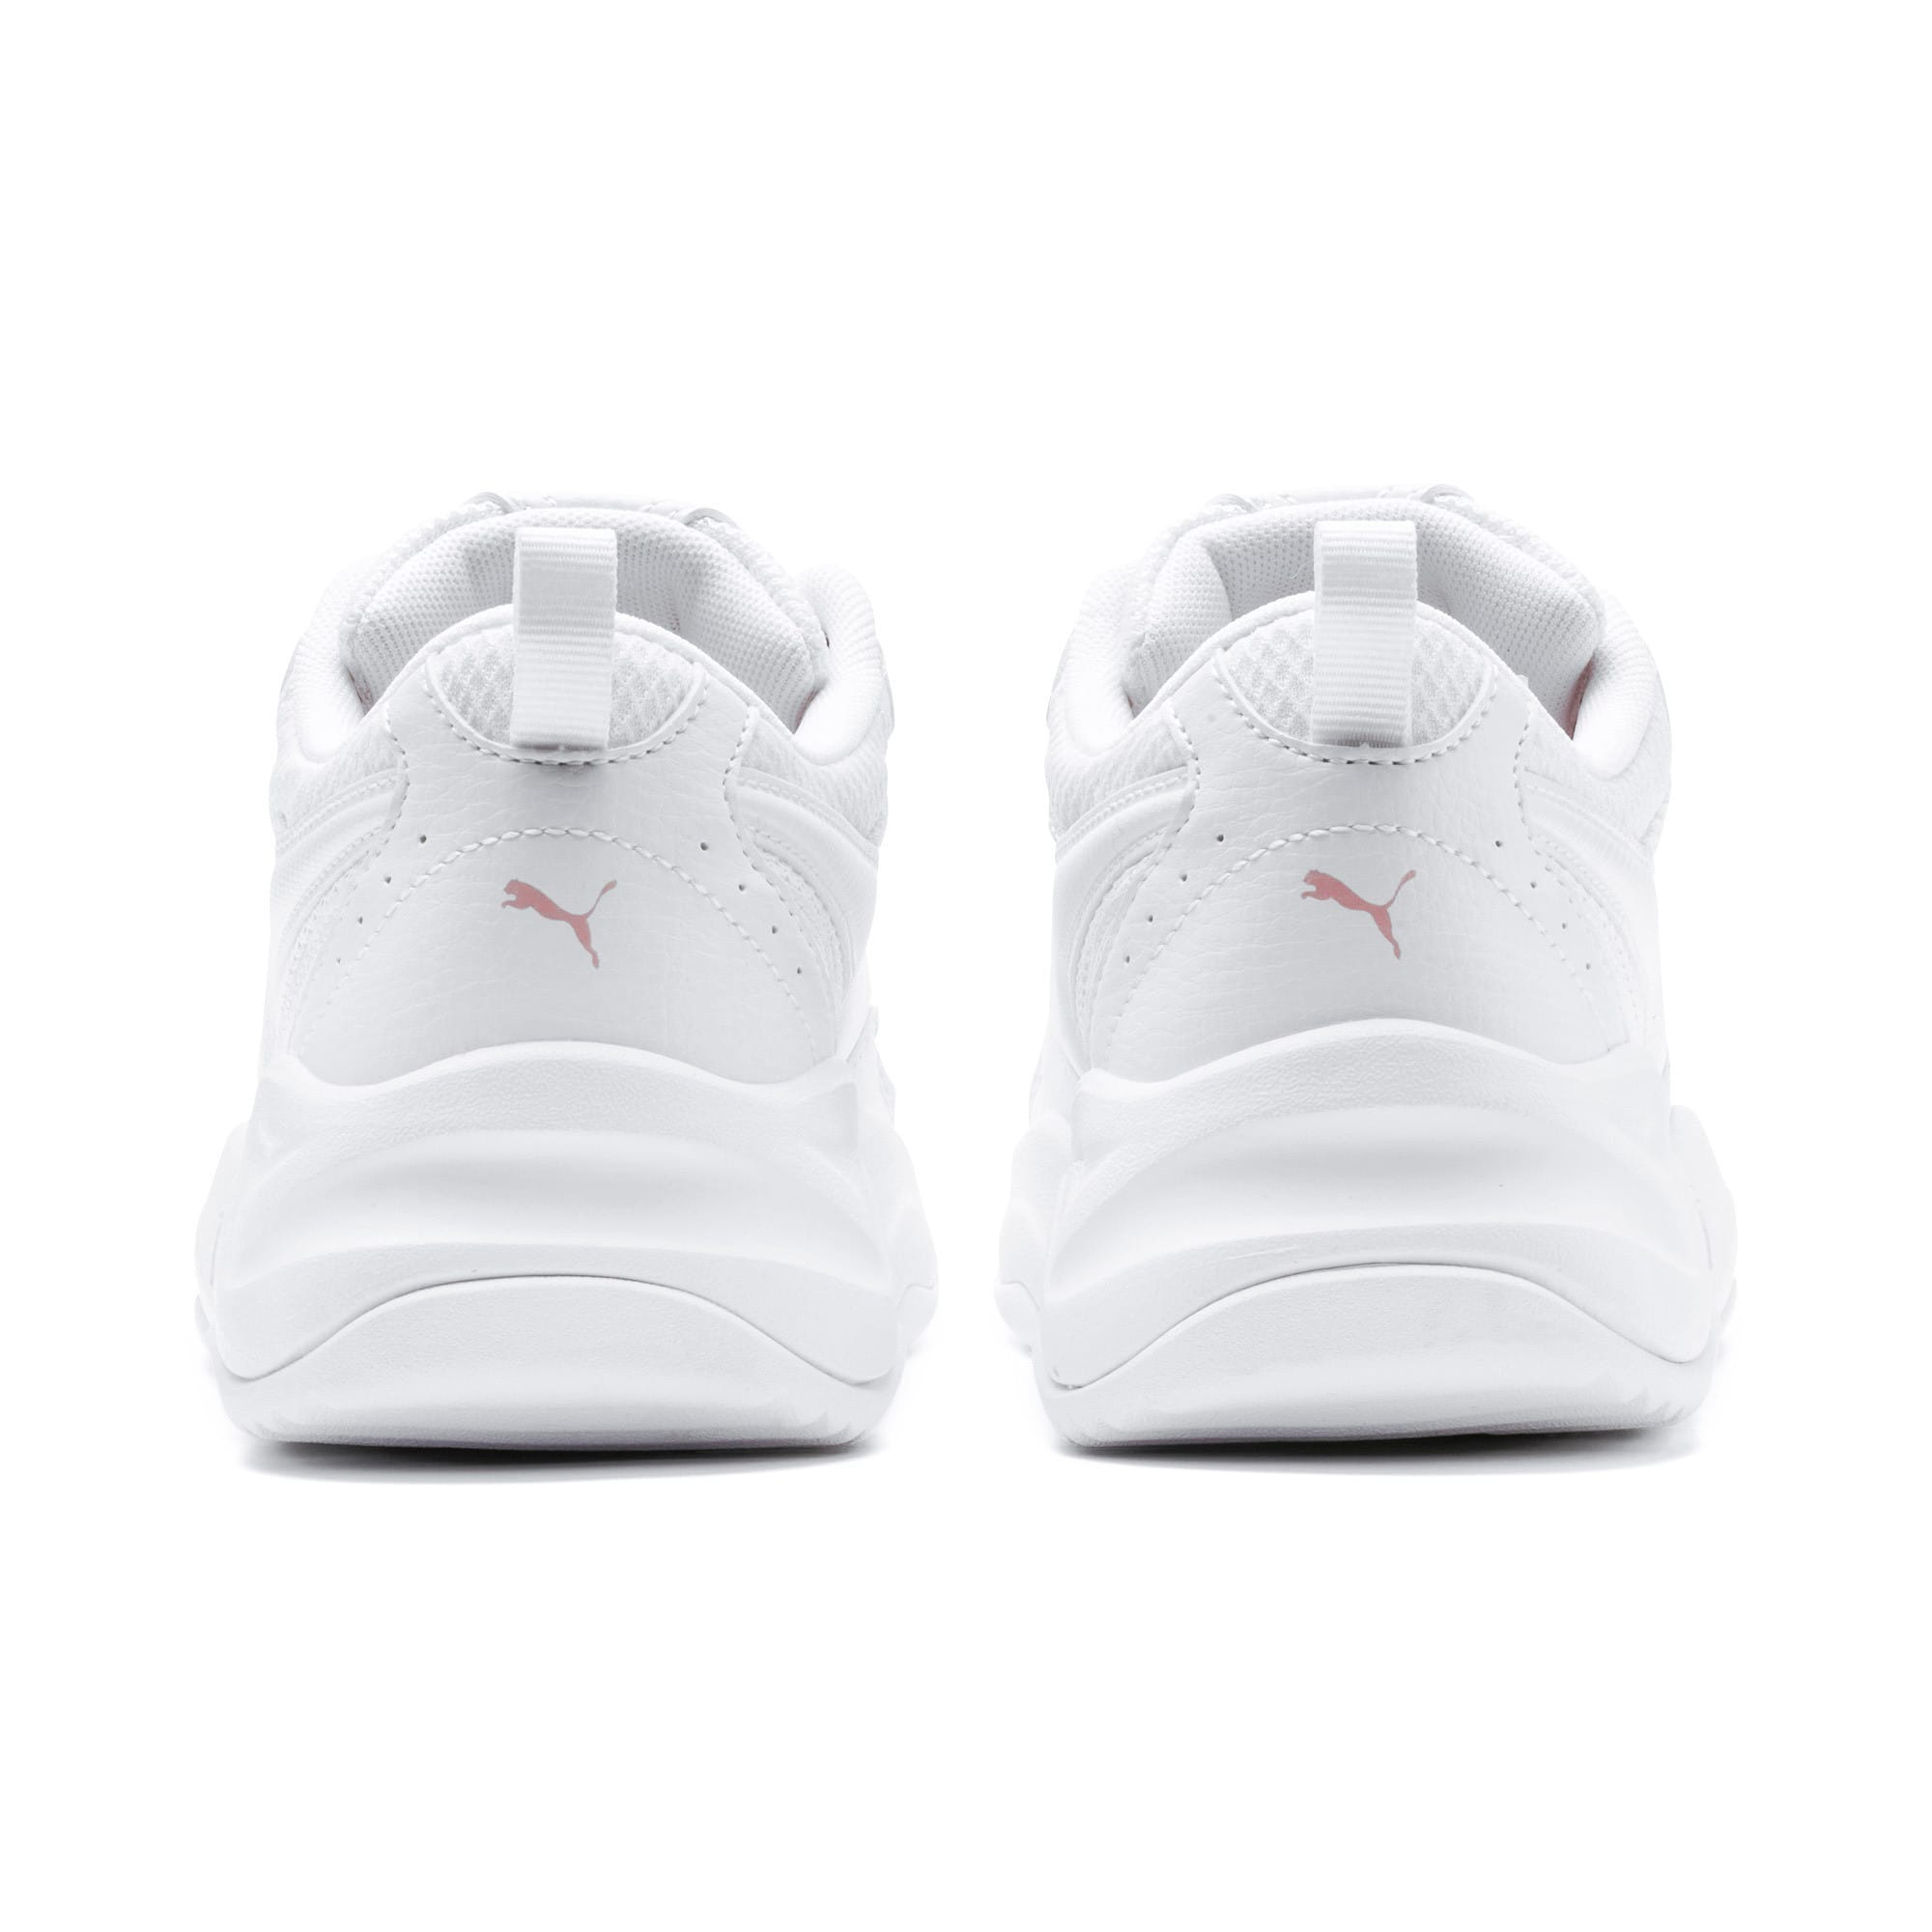 Thumbnail 3 of Cilia Youth Trainers, Puma White-Bridal Rose, medium-IND